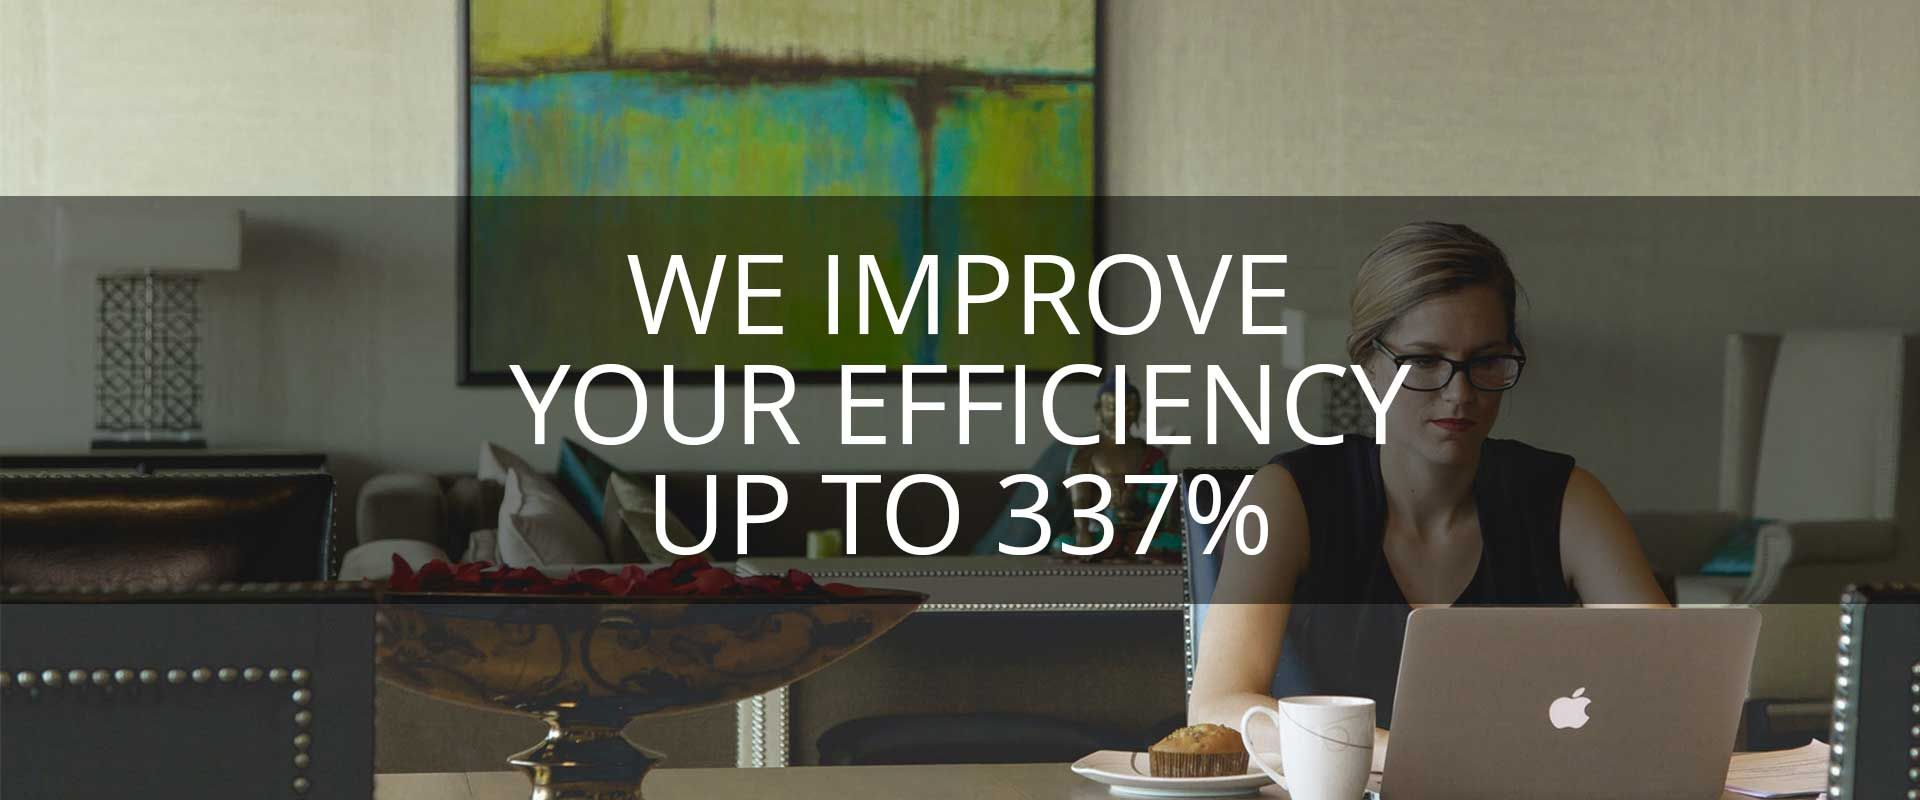 We improve your efficiency up to 400%